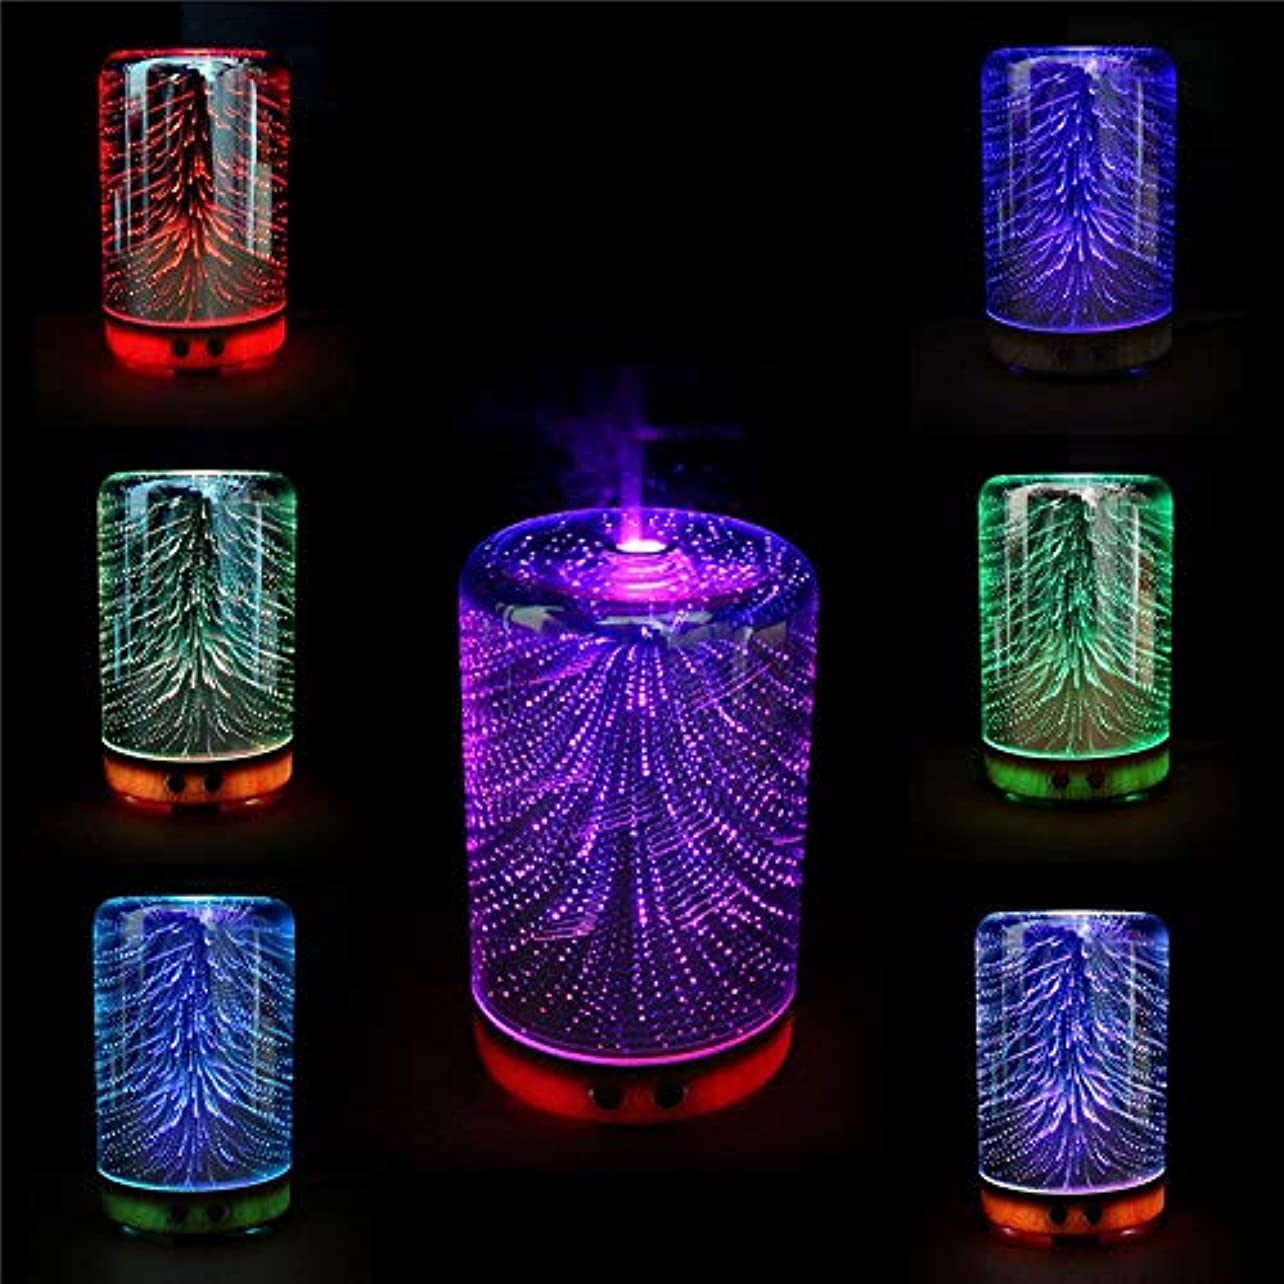 潜在的なアルカイック自転車LYEJM Color Changing 3D Lighting Essential Oil Aroma Diffuser Ultrasonic Mist Humidifier Aromatherapy 141[並行輸入]